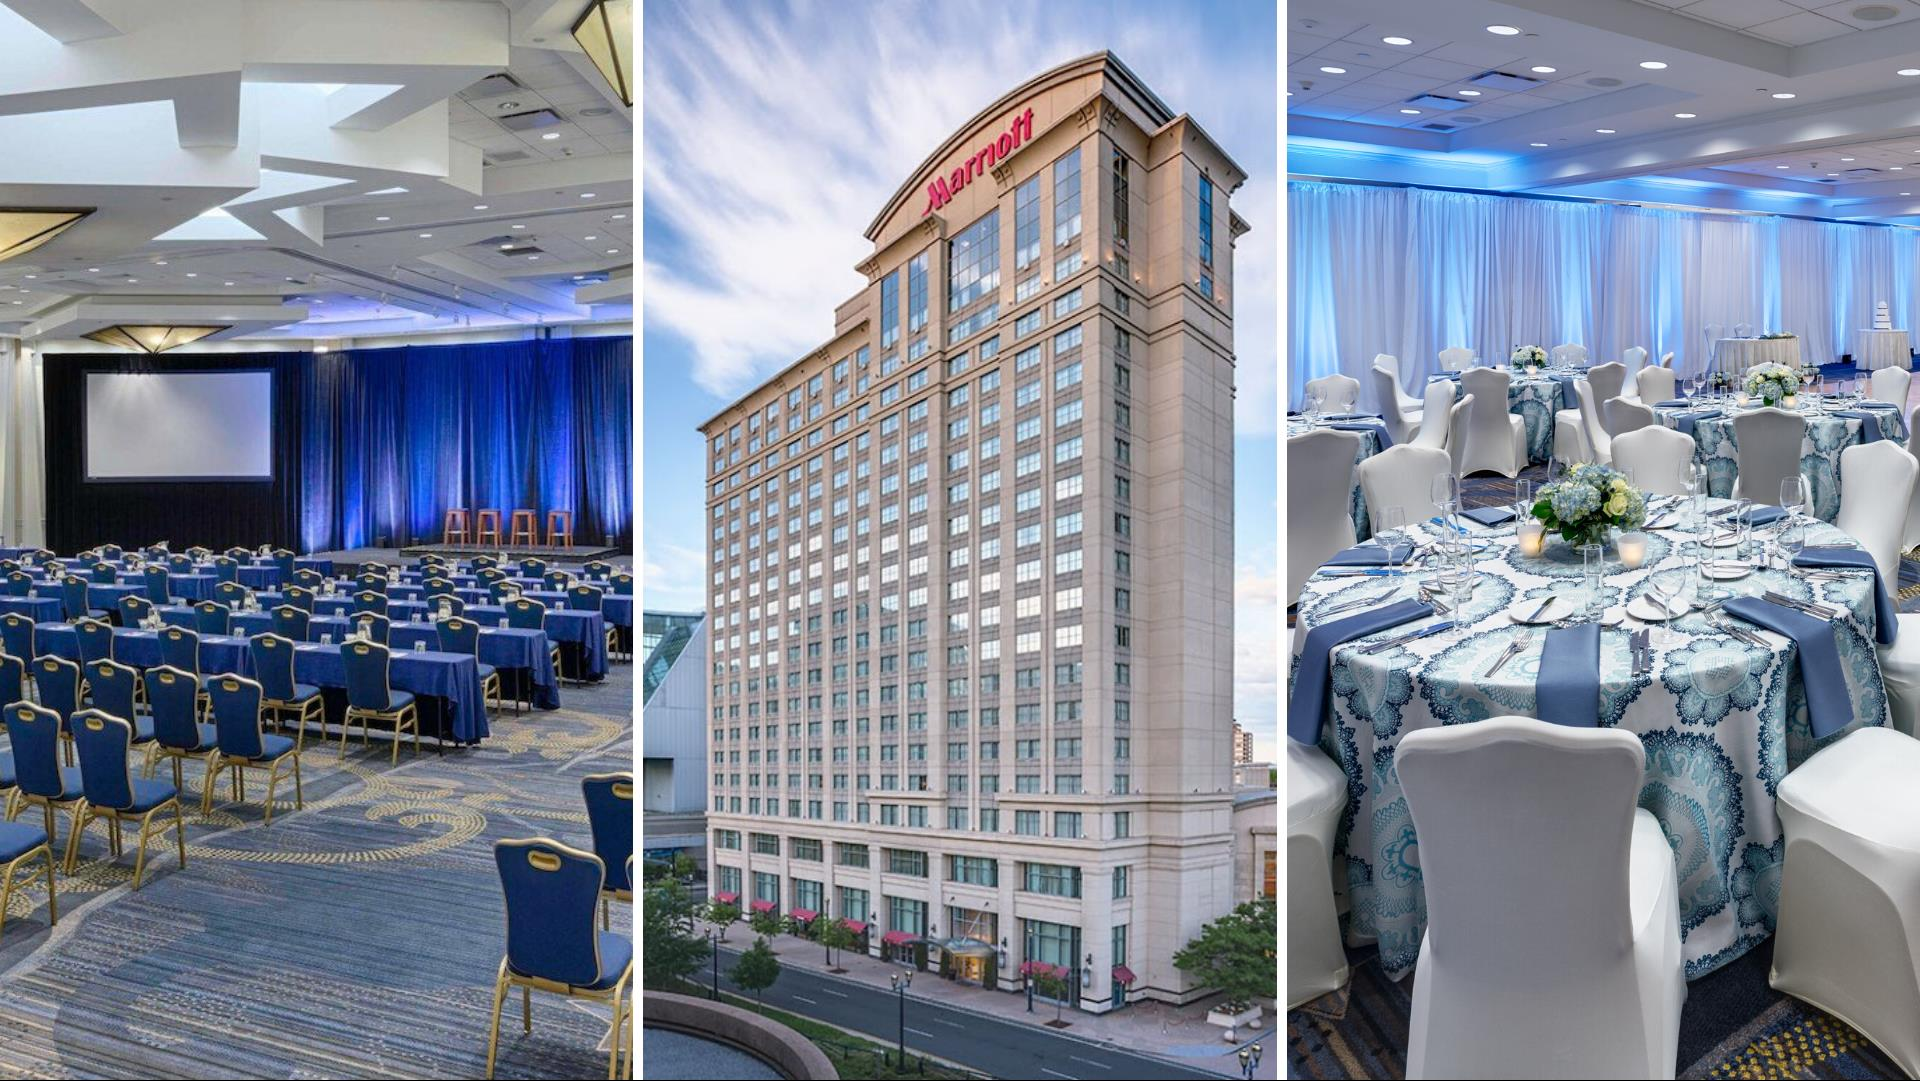 Meetings and Events at Hartford Marriott Downtown, Hartford, CT, US